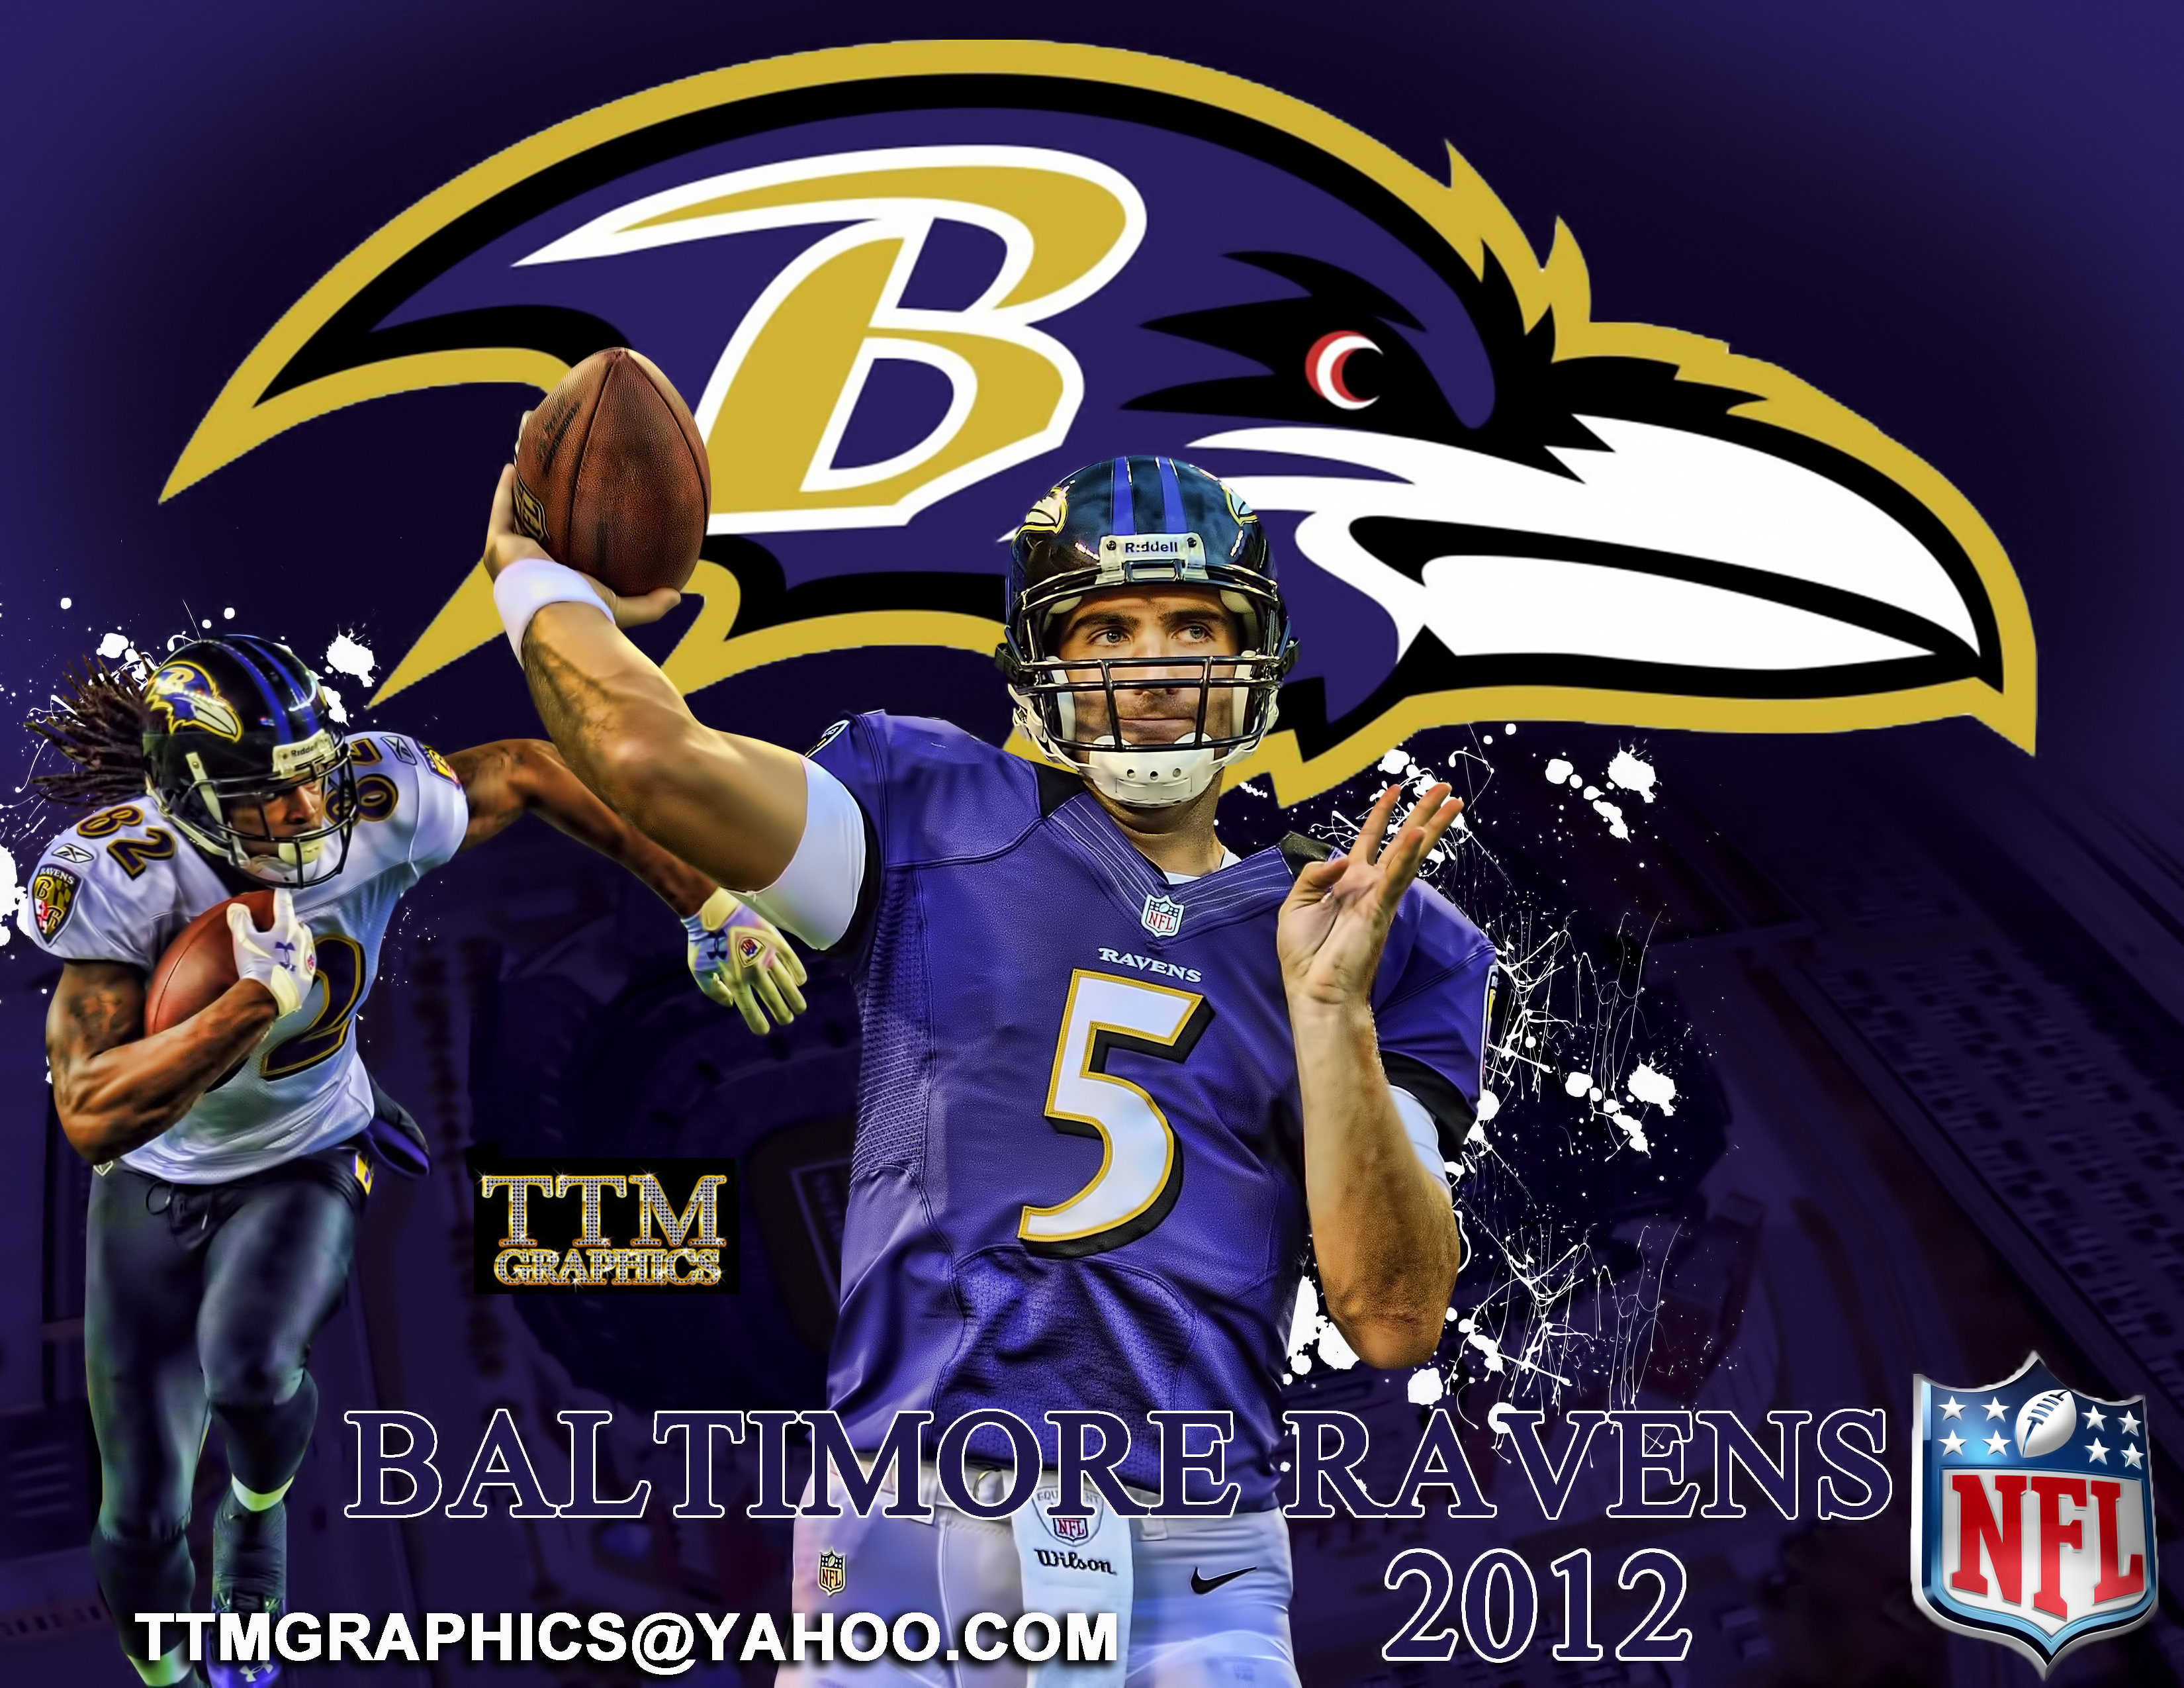 Baltimore Ravens desktop wallpaper Baltimore Ravens wallpapers 3300x2550